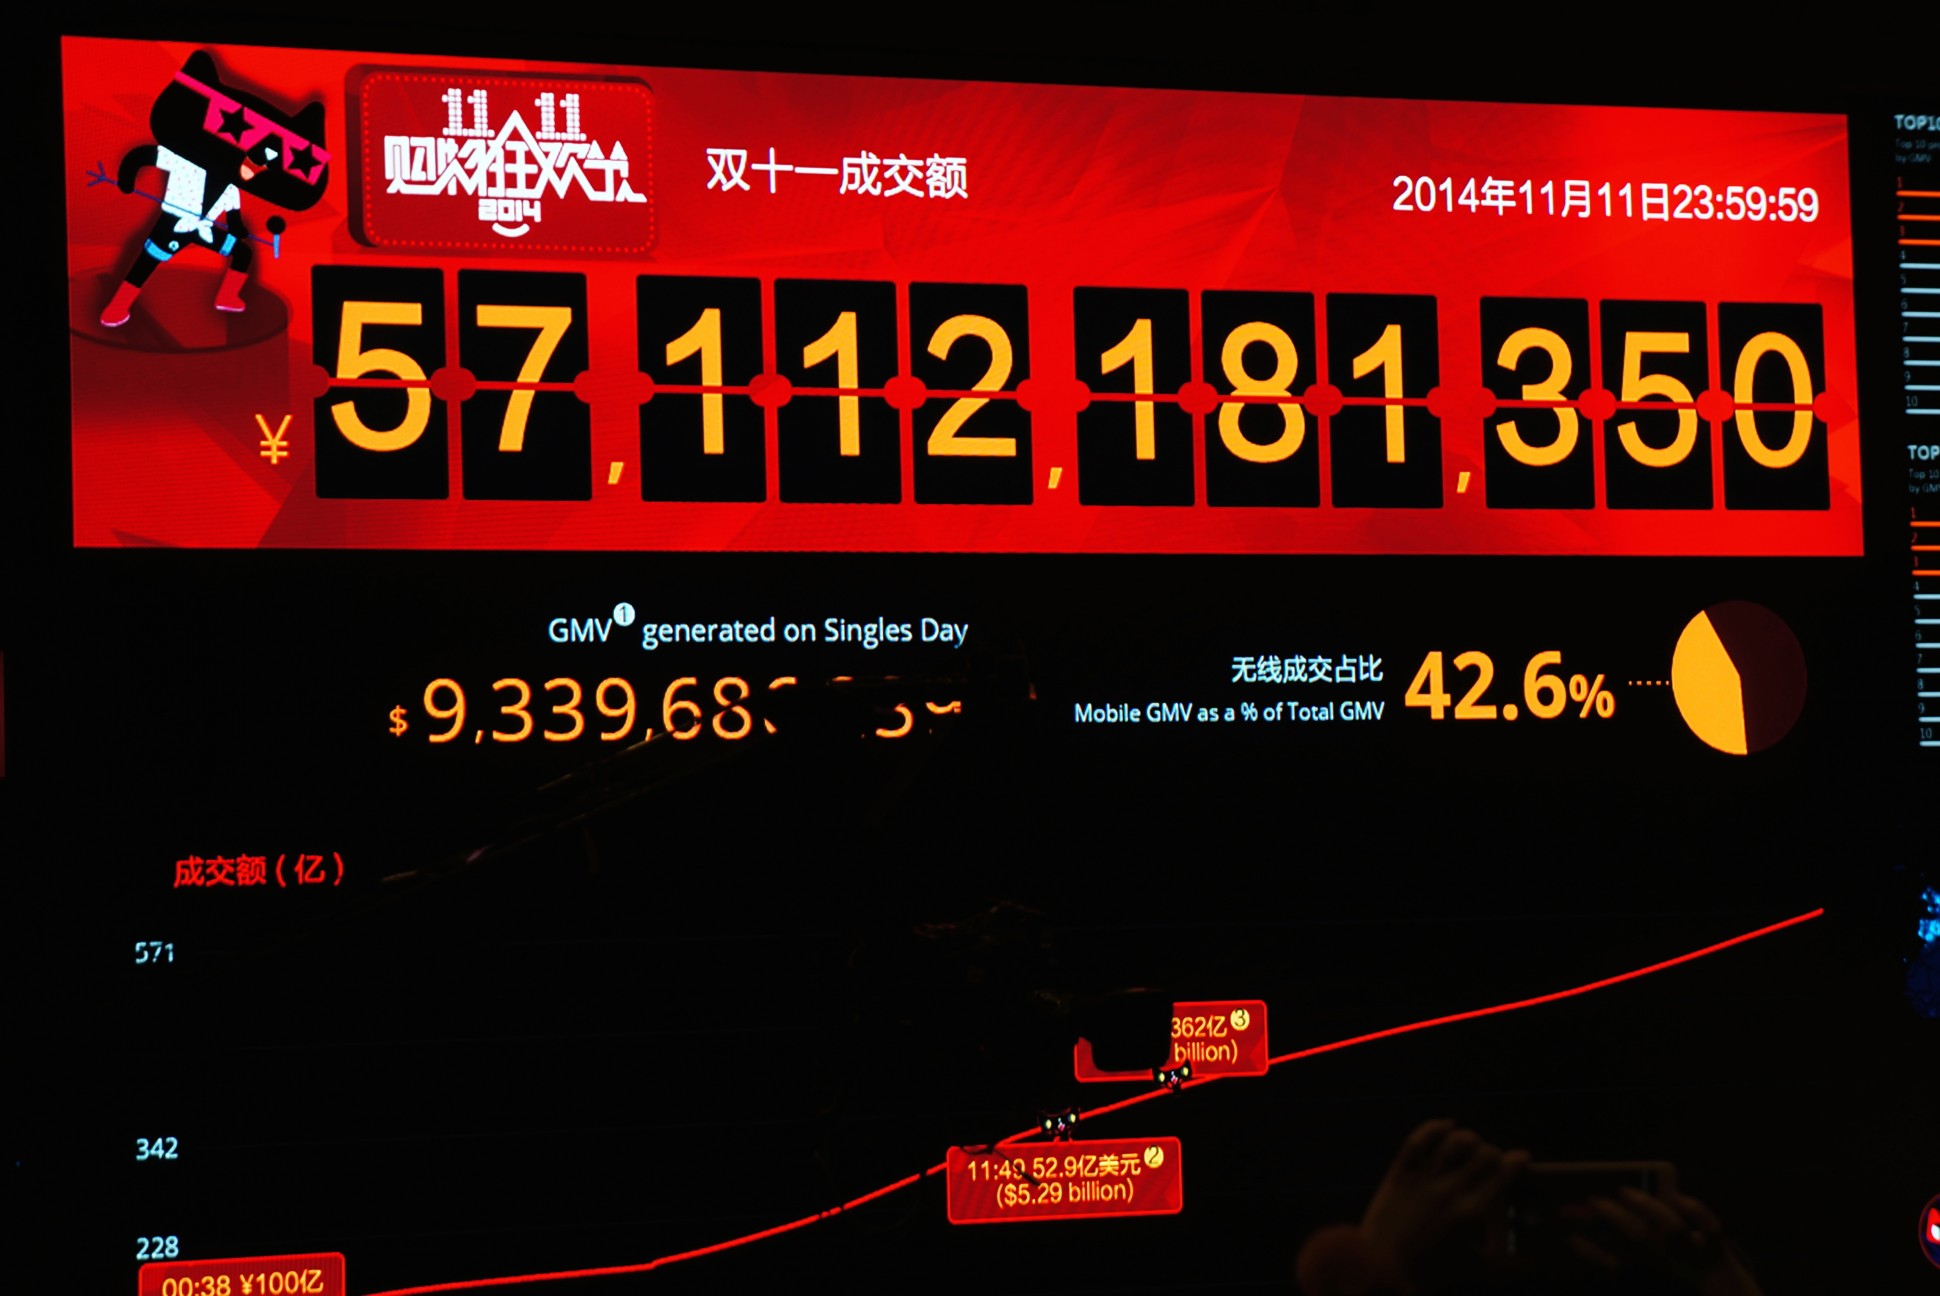 Live data streaming of Alibaba's Singles Day sale on November 11, 2014.